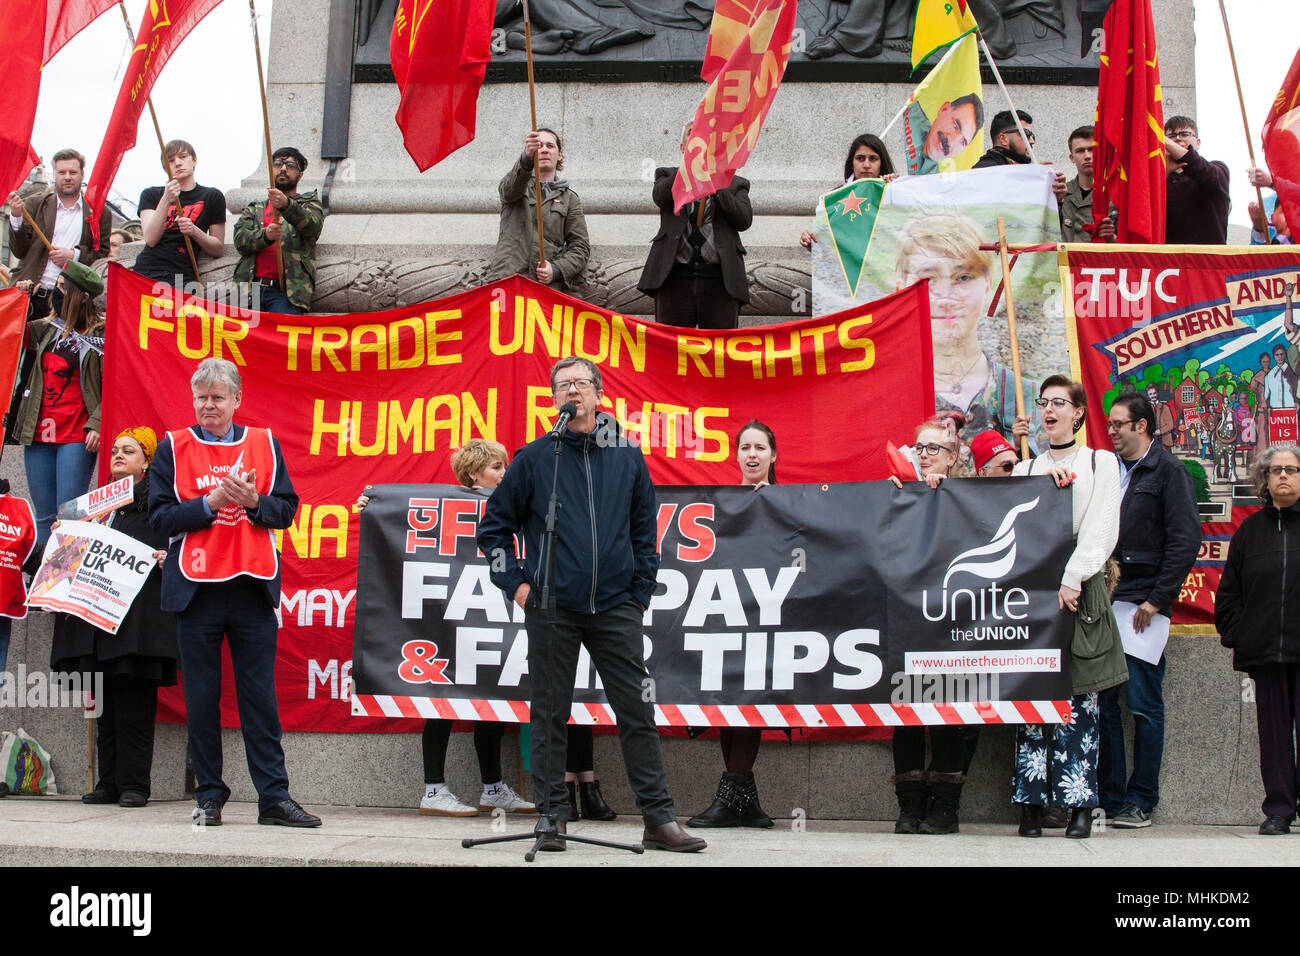 London, UK. 1st May, 2018. Peter Kavanagh of Unite addresses representatives of trade unions and socialist and communist parties from many different countries taking part in the annual May Day rally in Trafalgar Square to mark International Workers' Day. Credit: Mark Kerrison/Alamy Live News Stock Photo